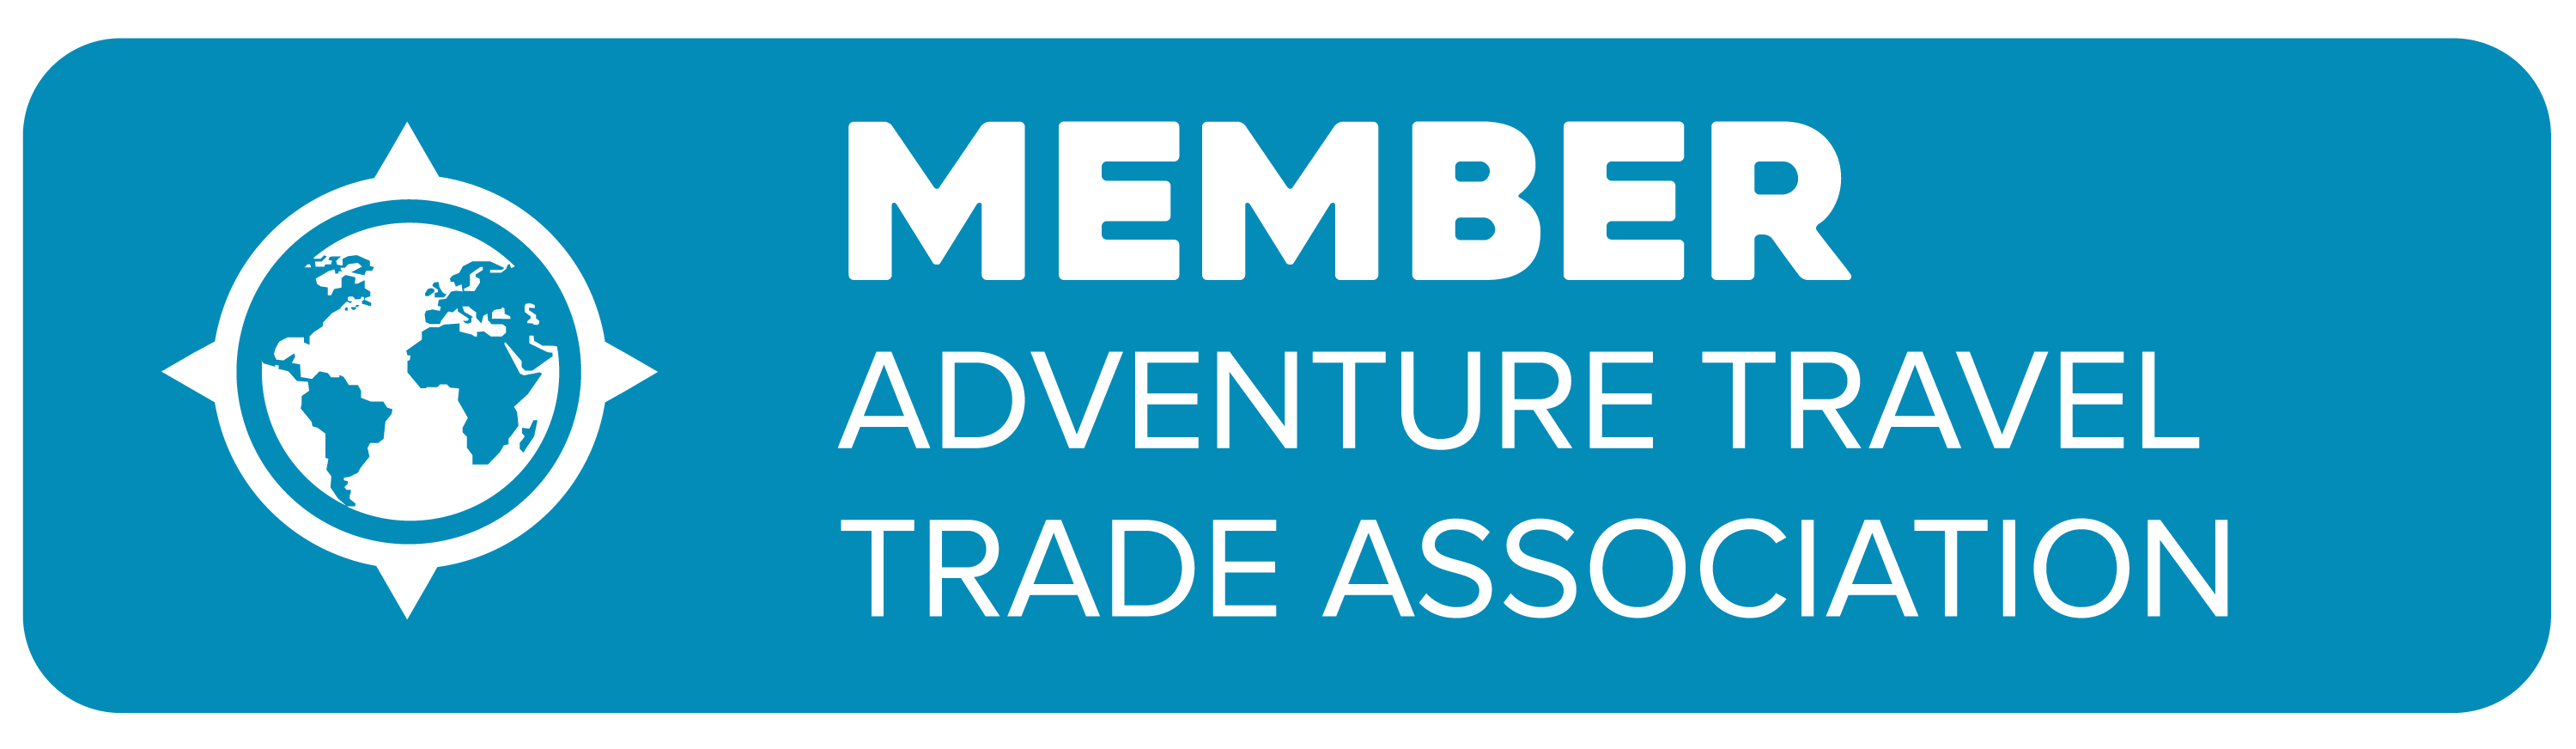 InAfrica is a member of the Adventure Travel Trade Association